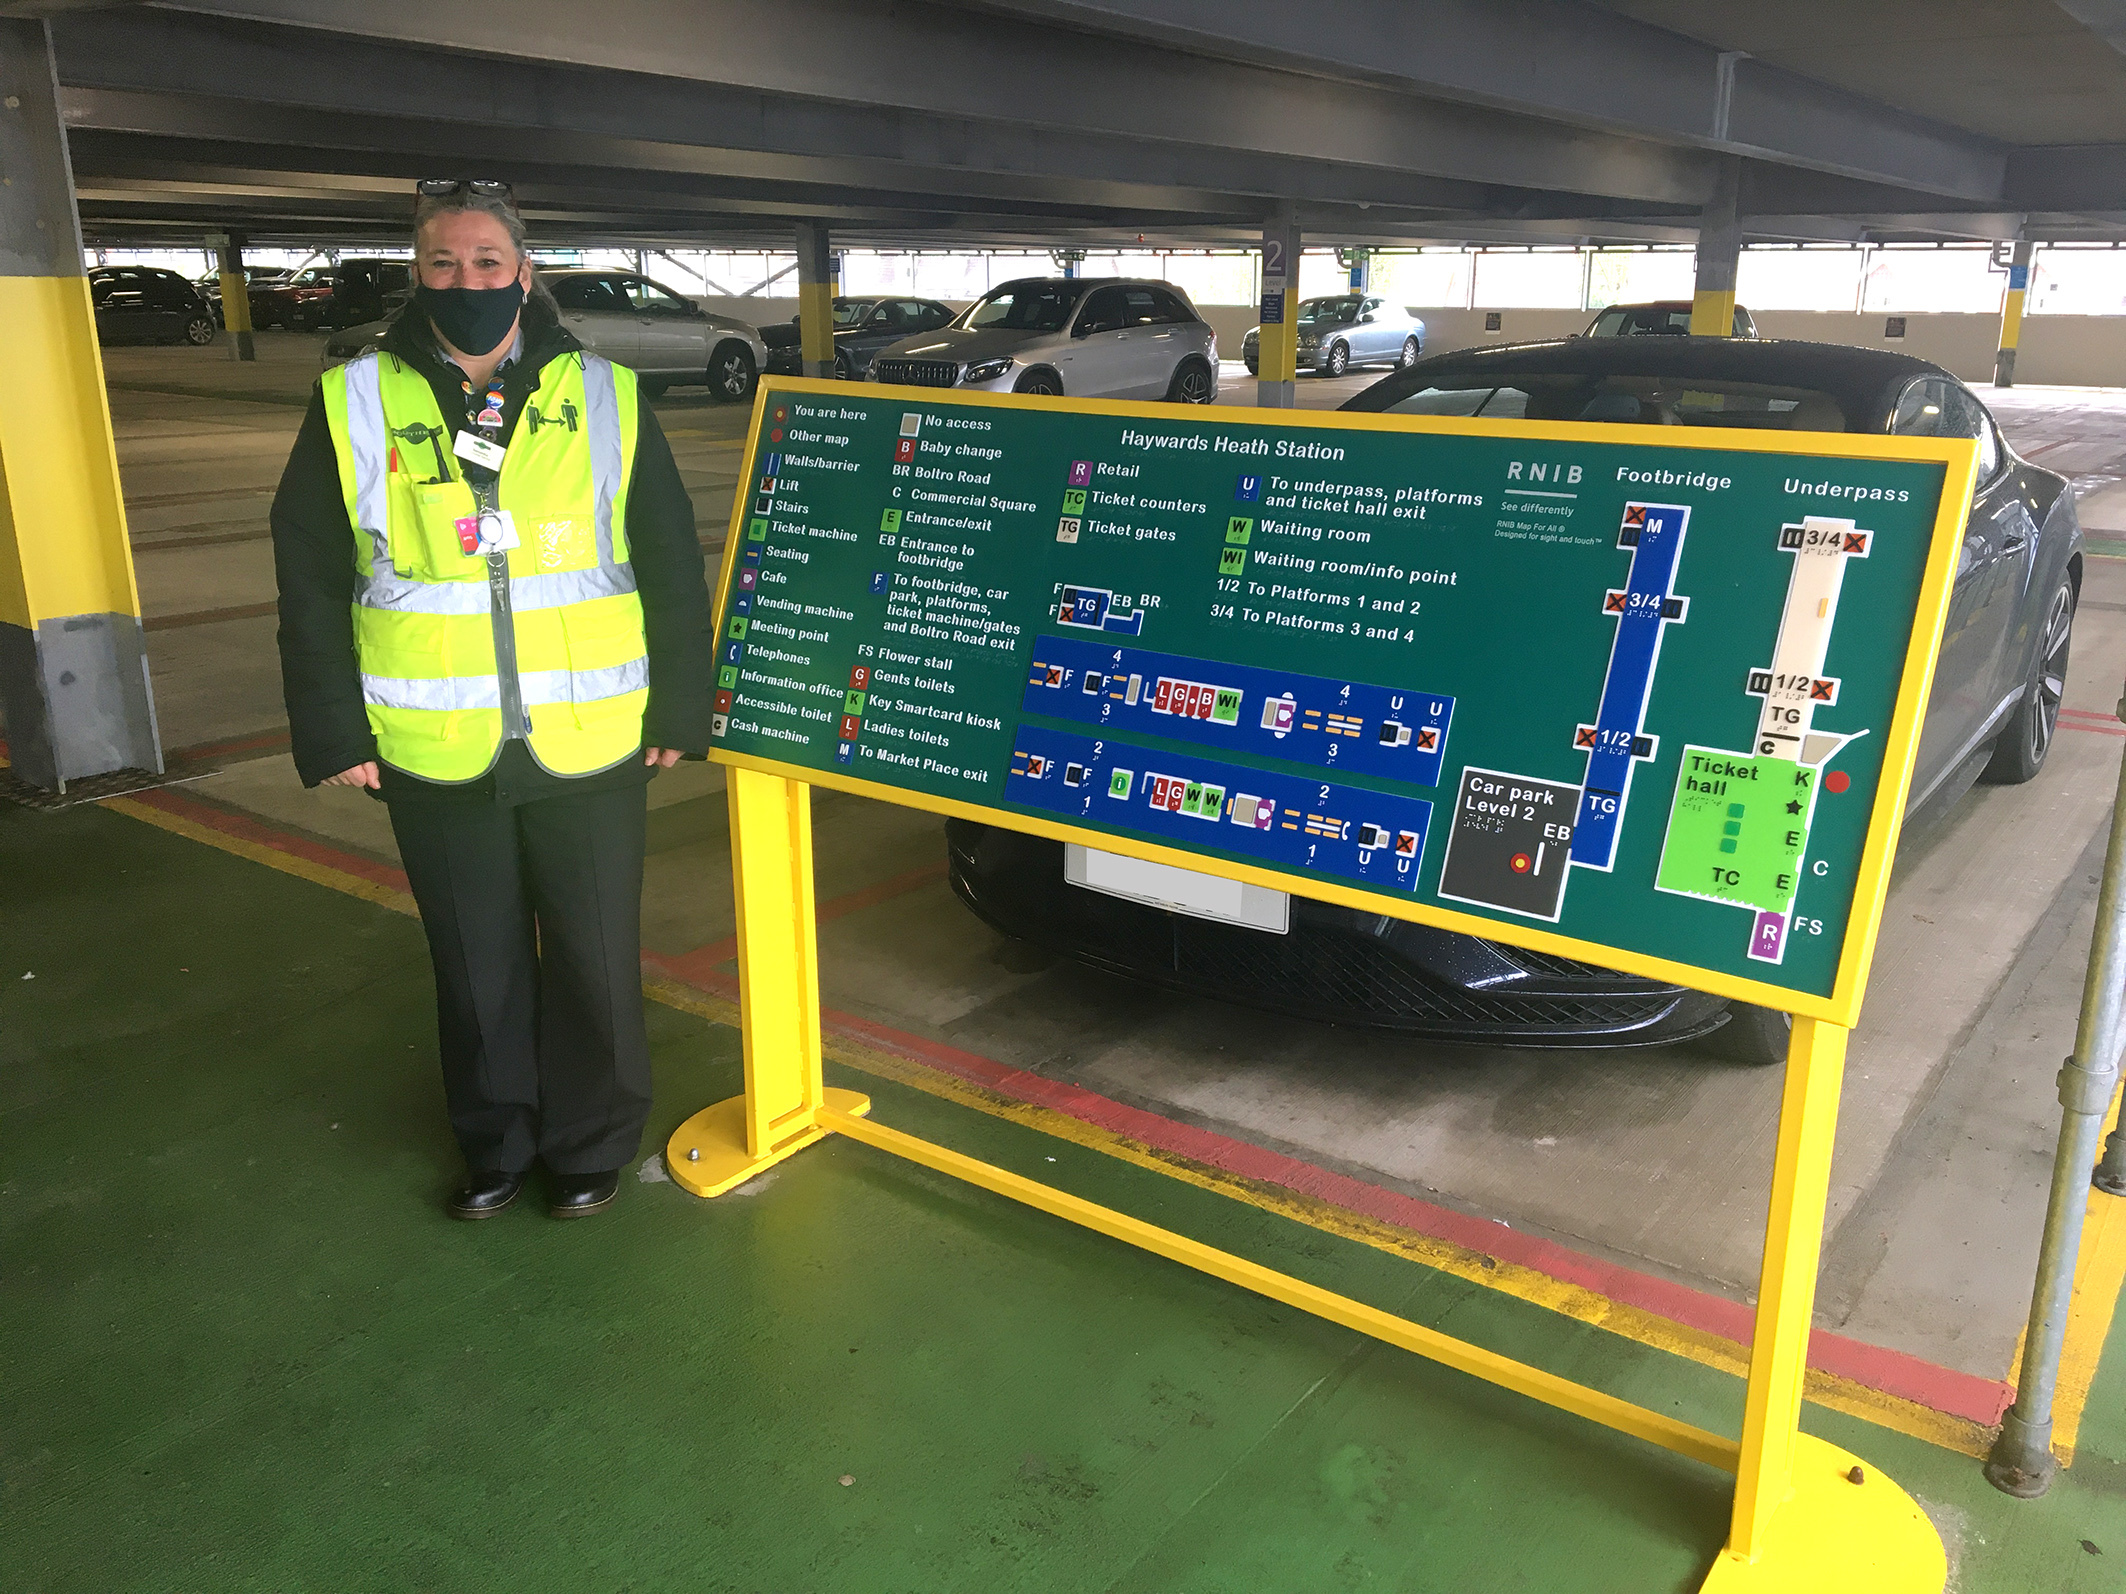 Heywards Heath - Staff member Sam Hugit next to a map touching the parking lot 2